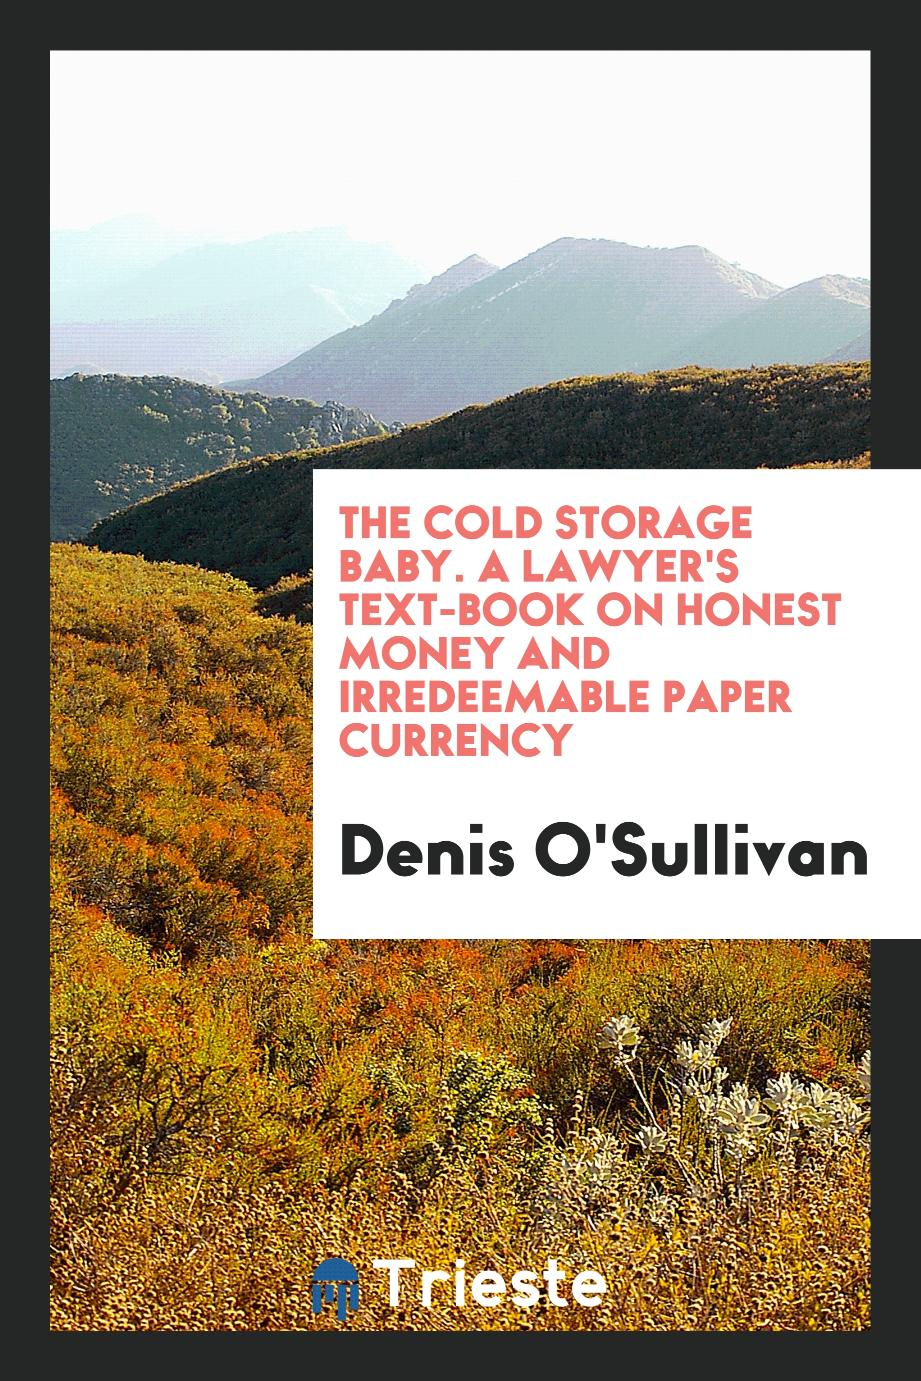 The Cold Storage Baby. A Lawyer's Text-Book on Honest Money and Irredeemable Paper Currency